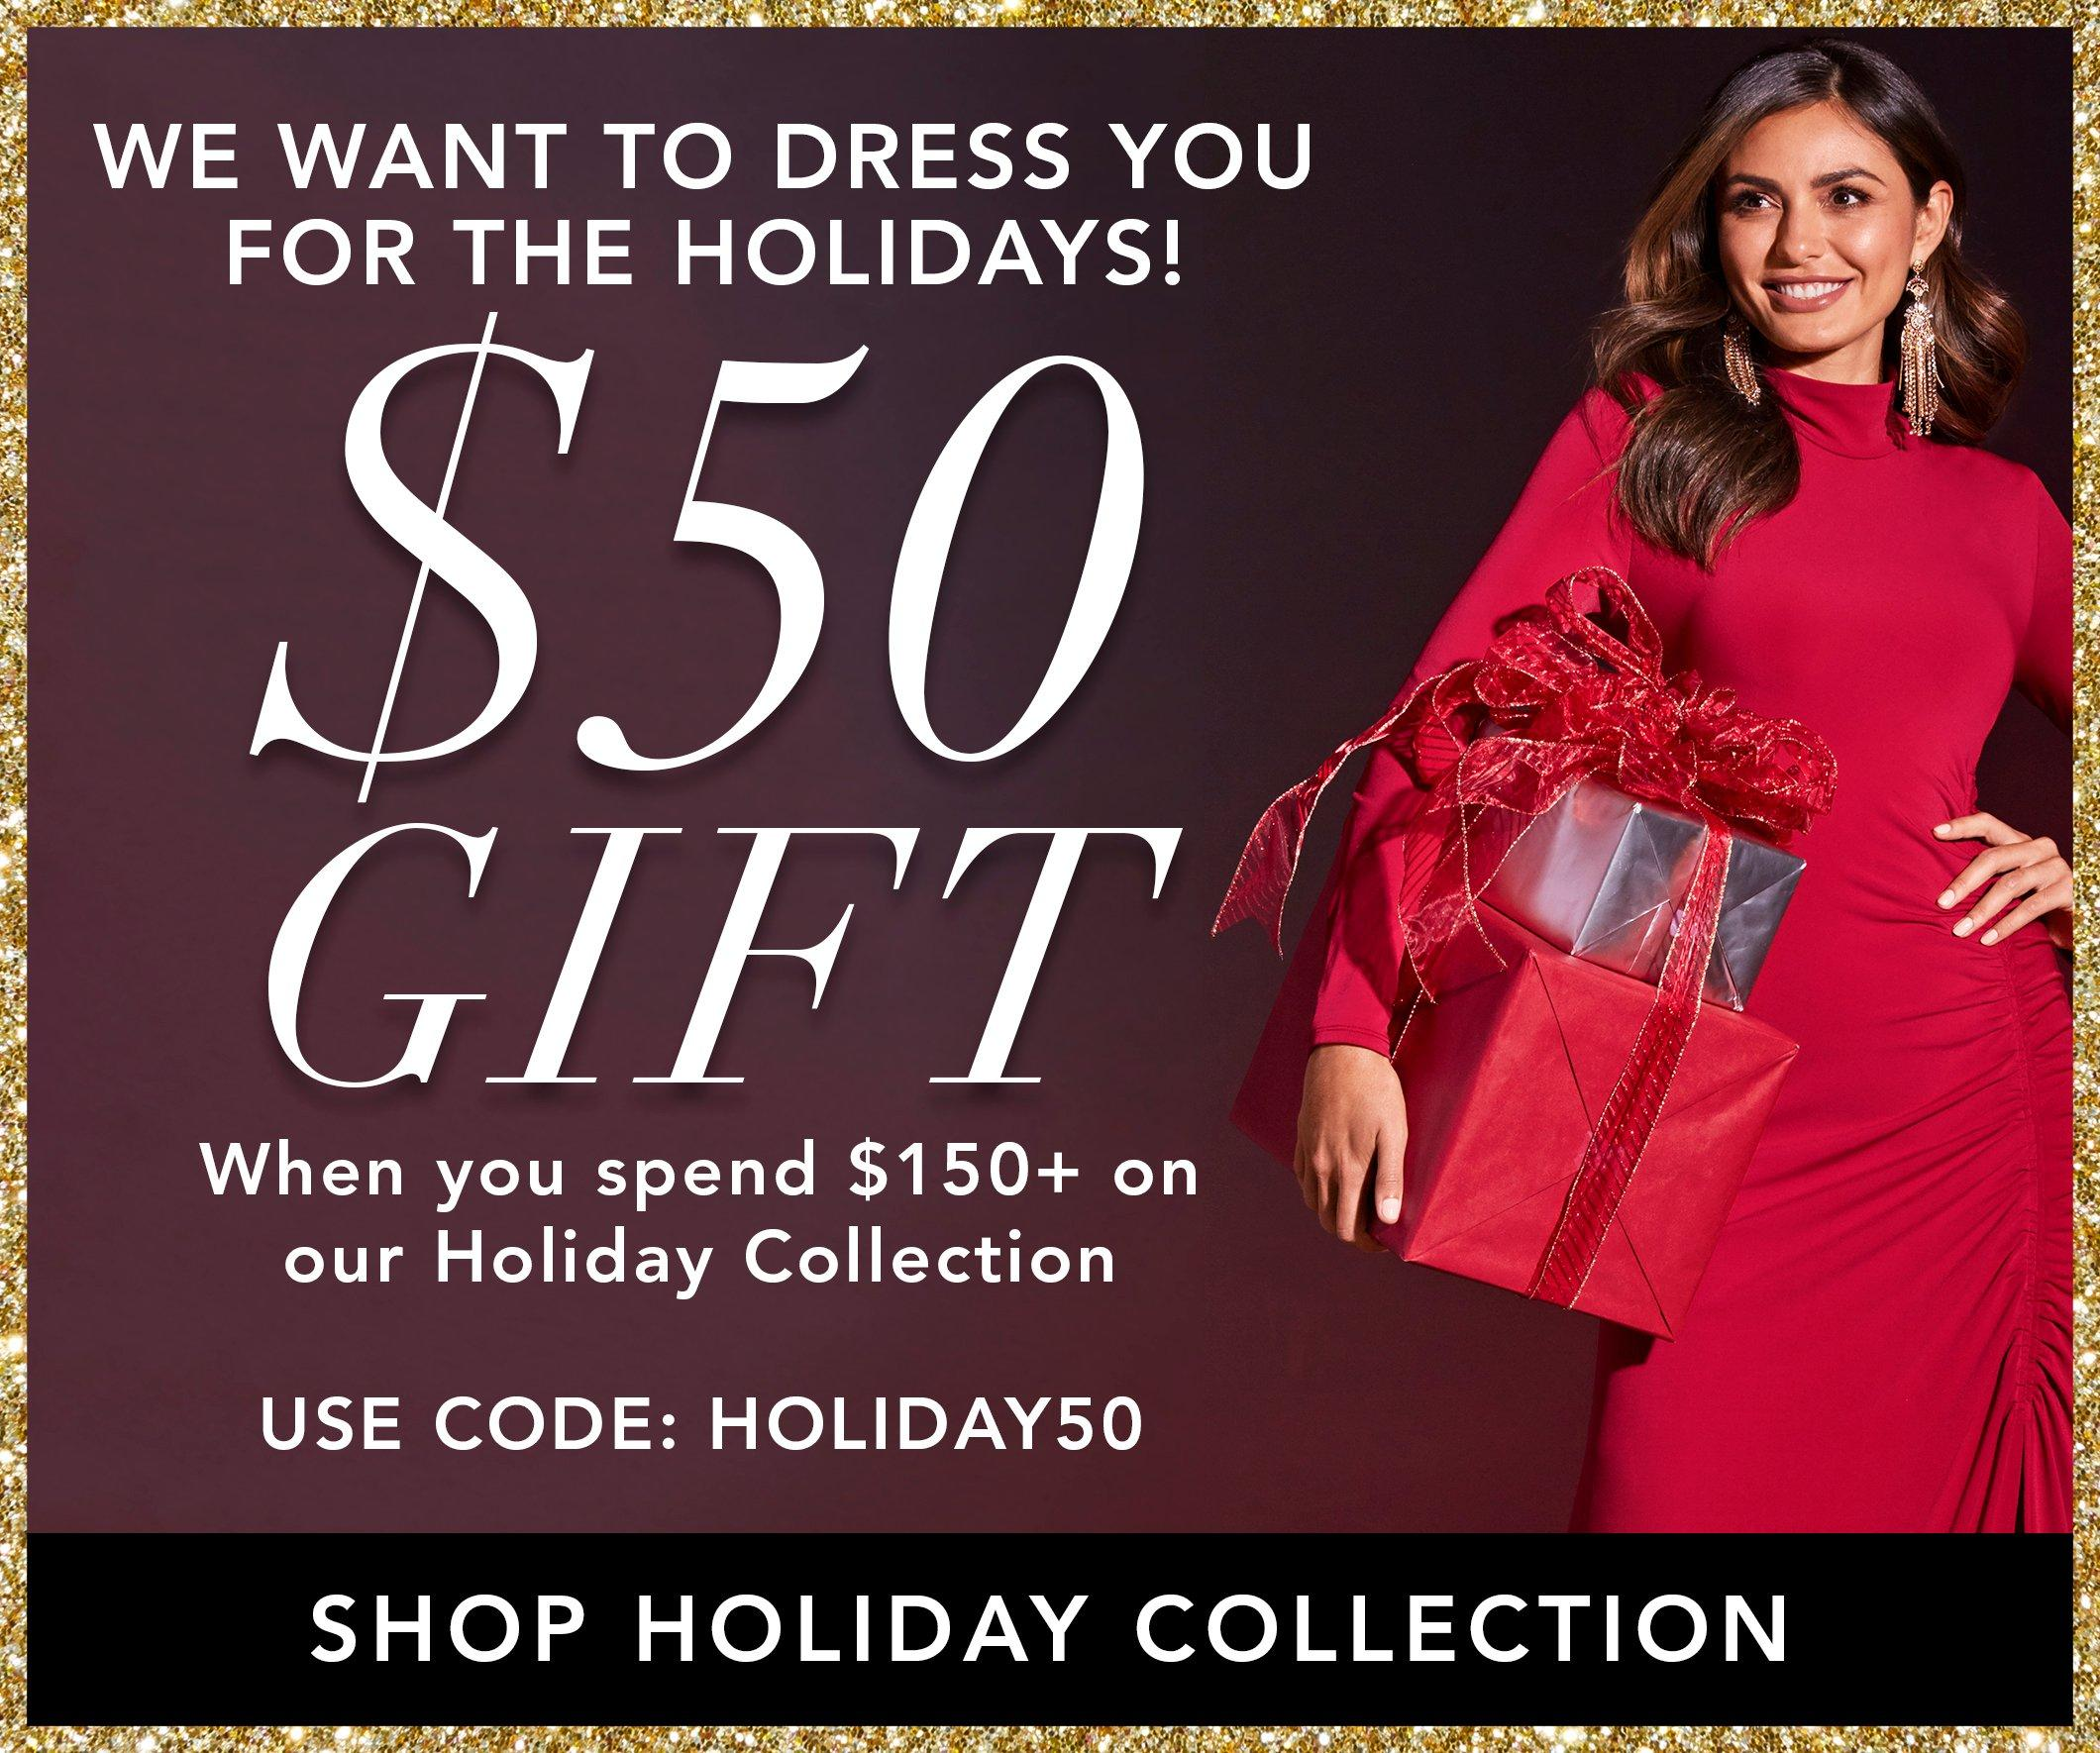 Get $50 when you spend $150. Use code HOLIDAY50